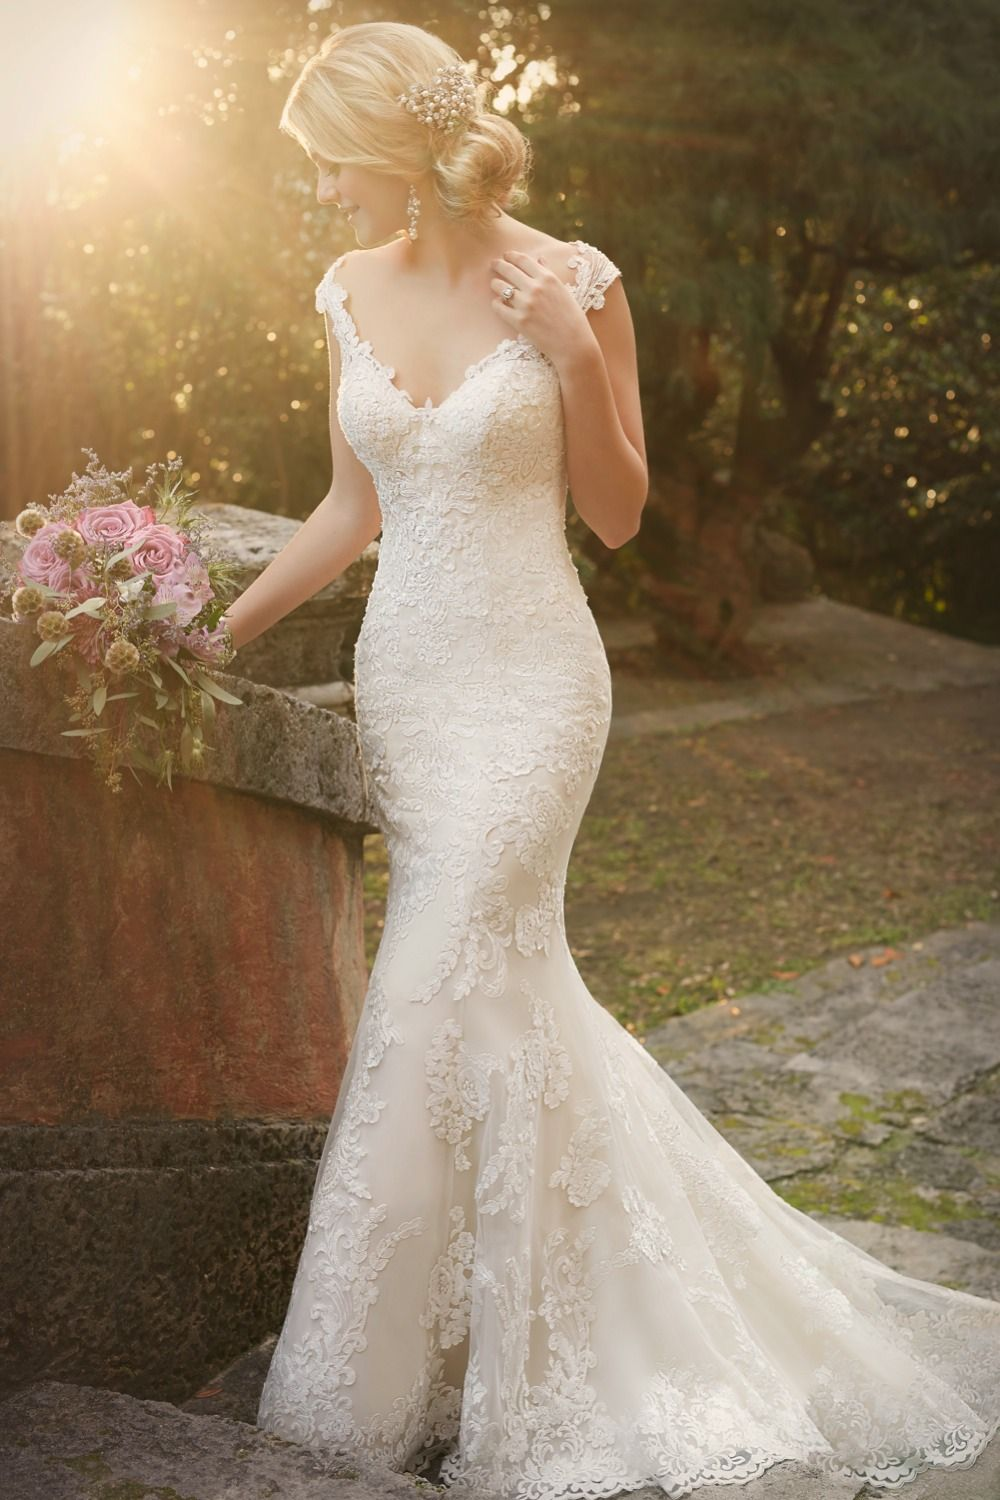 Fishtail wedding dress   gorgeous fishtail wedding dresses inspired by Michelle Keegan